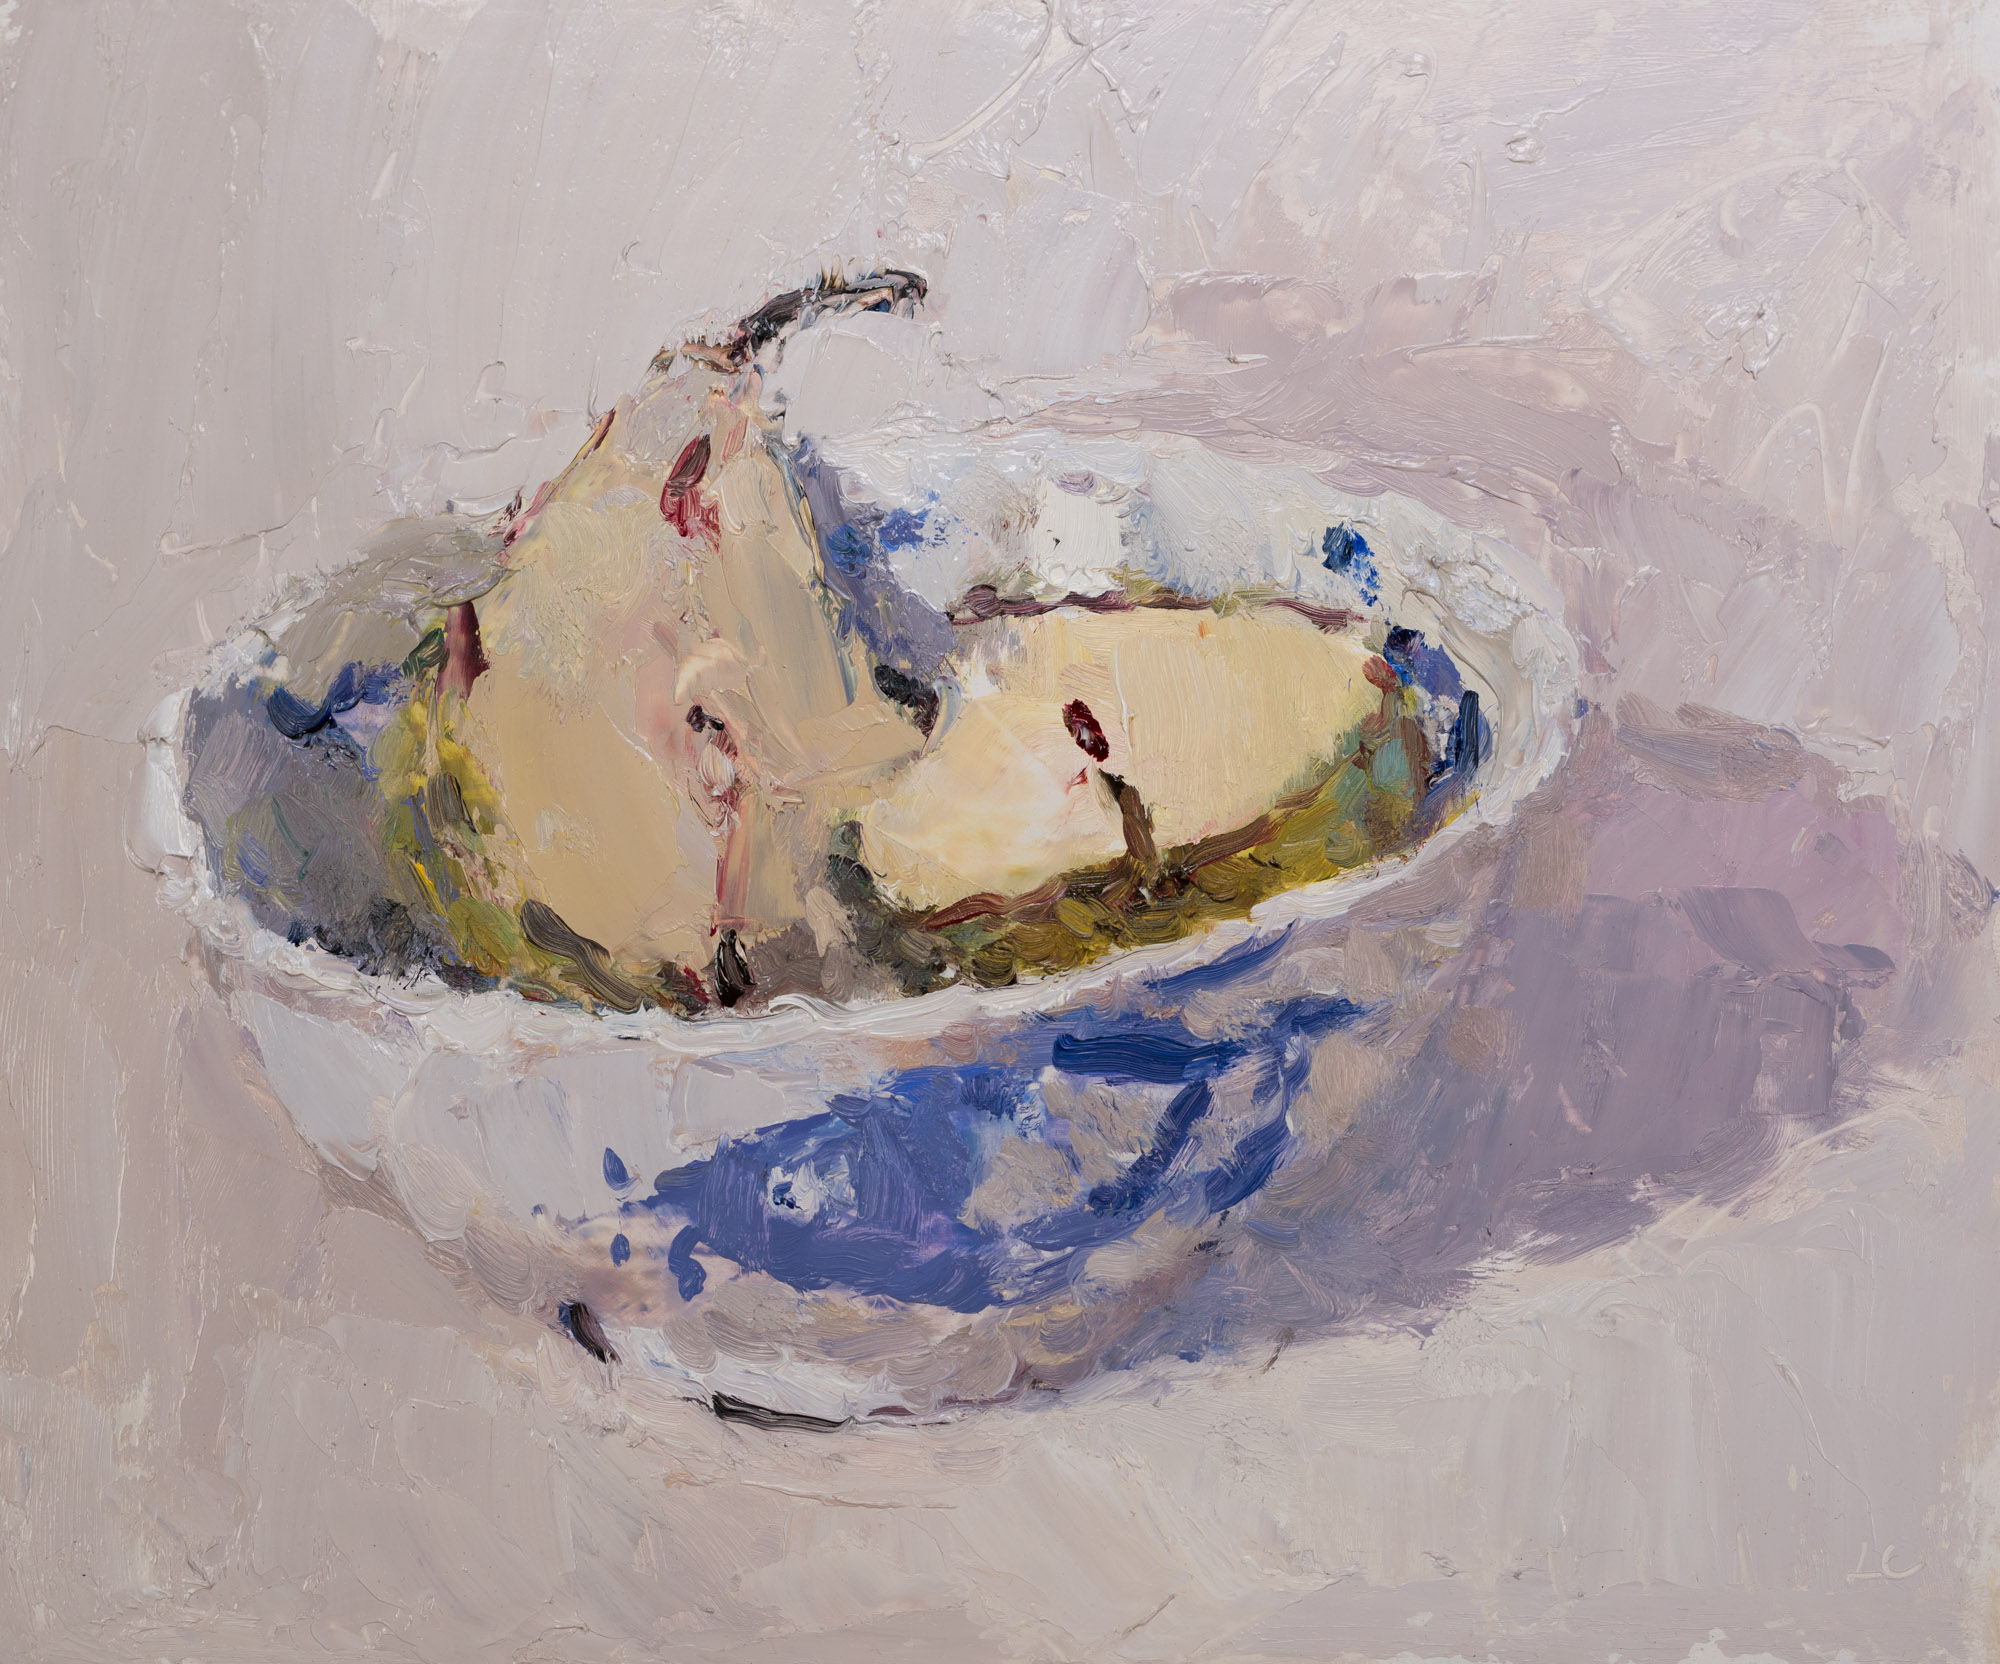 Pear Halves in a Chinese Bowl 1, Oil on Board, 21.3cm x 25cm (2019-77)